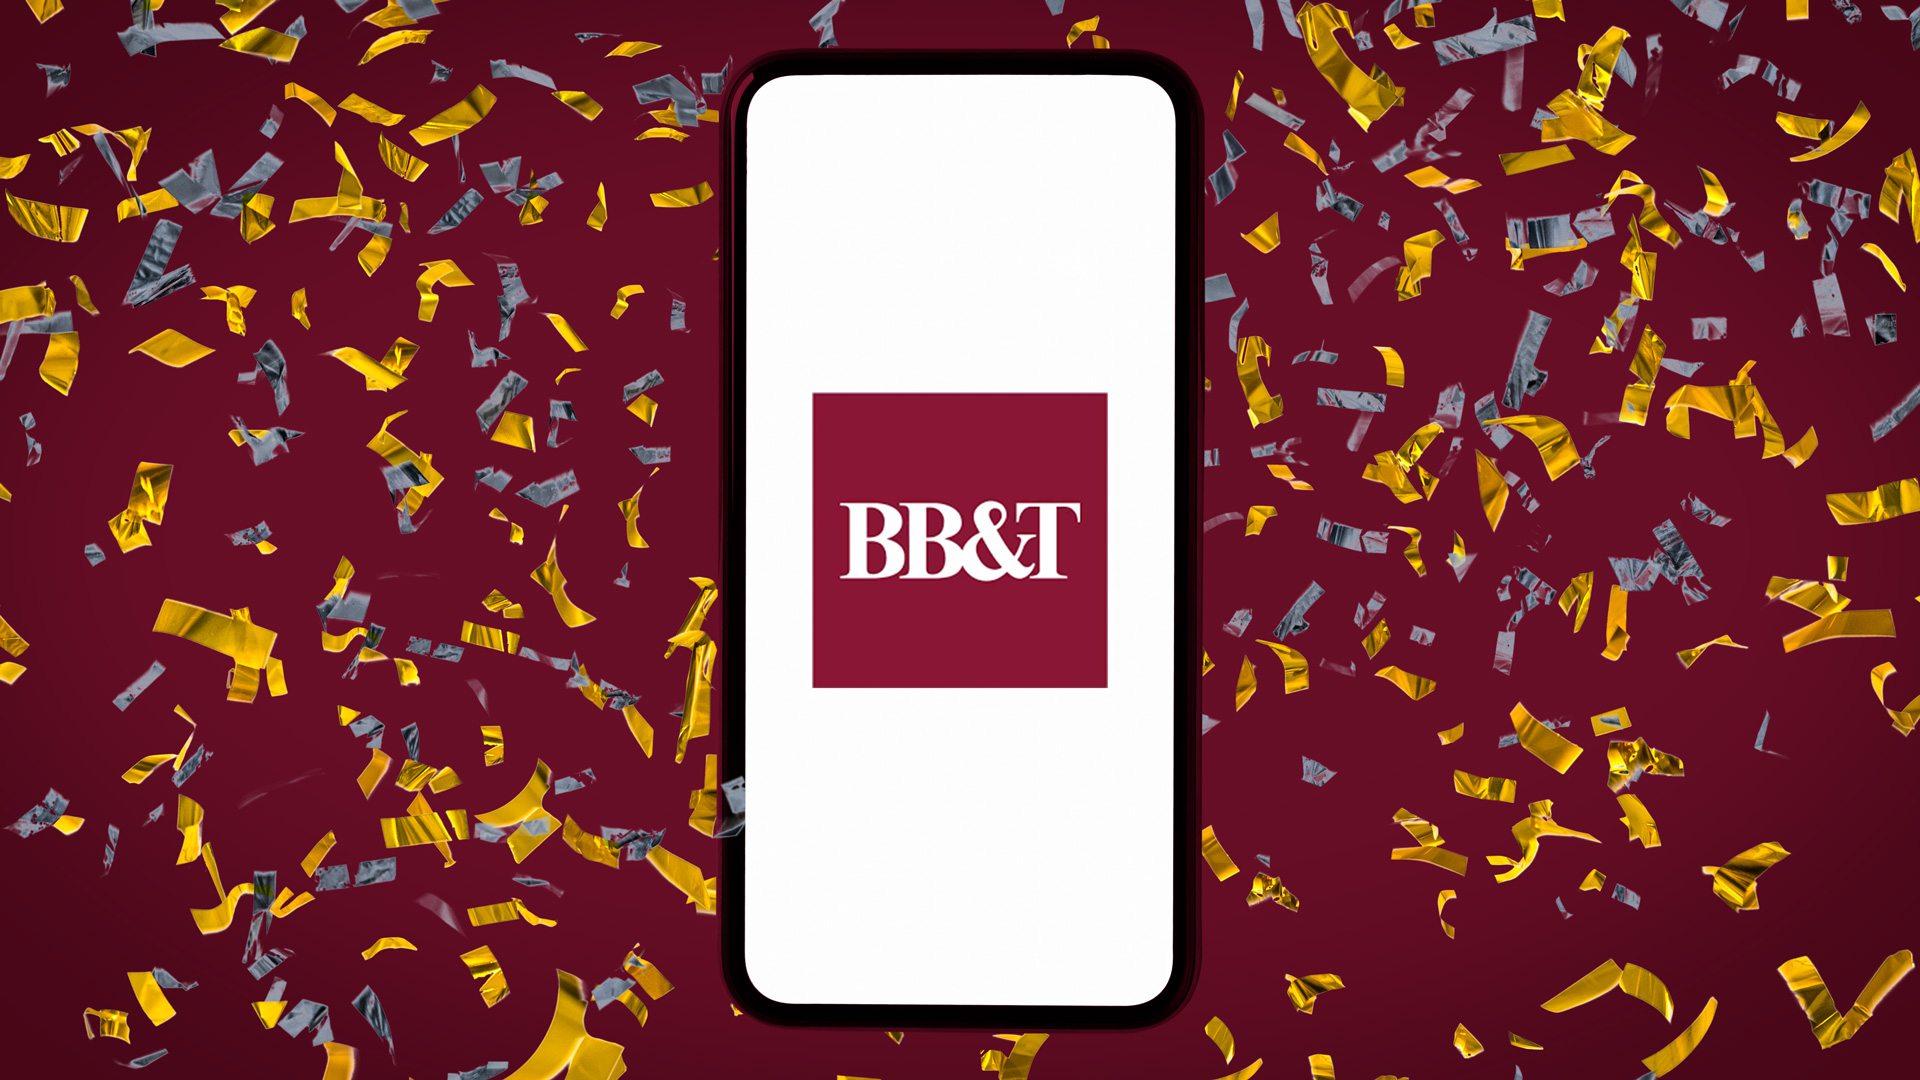 BB&T Bank promotions